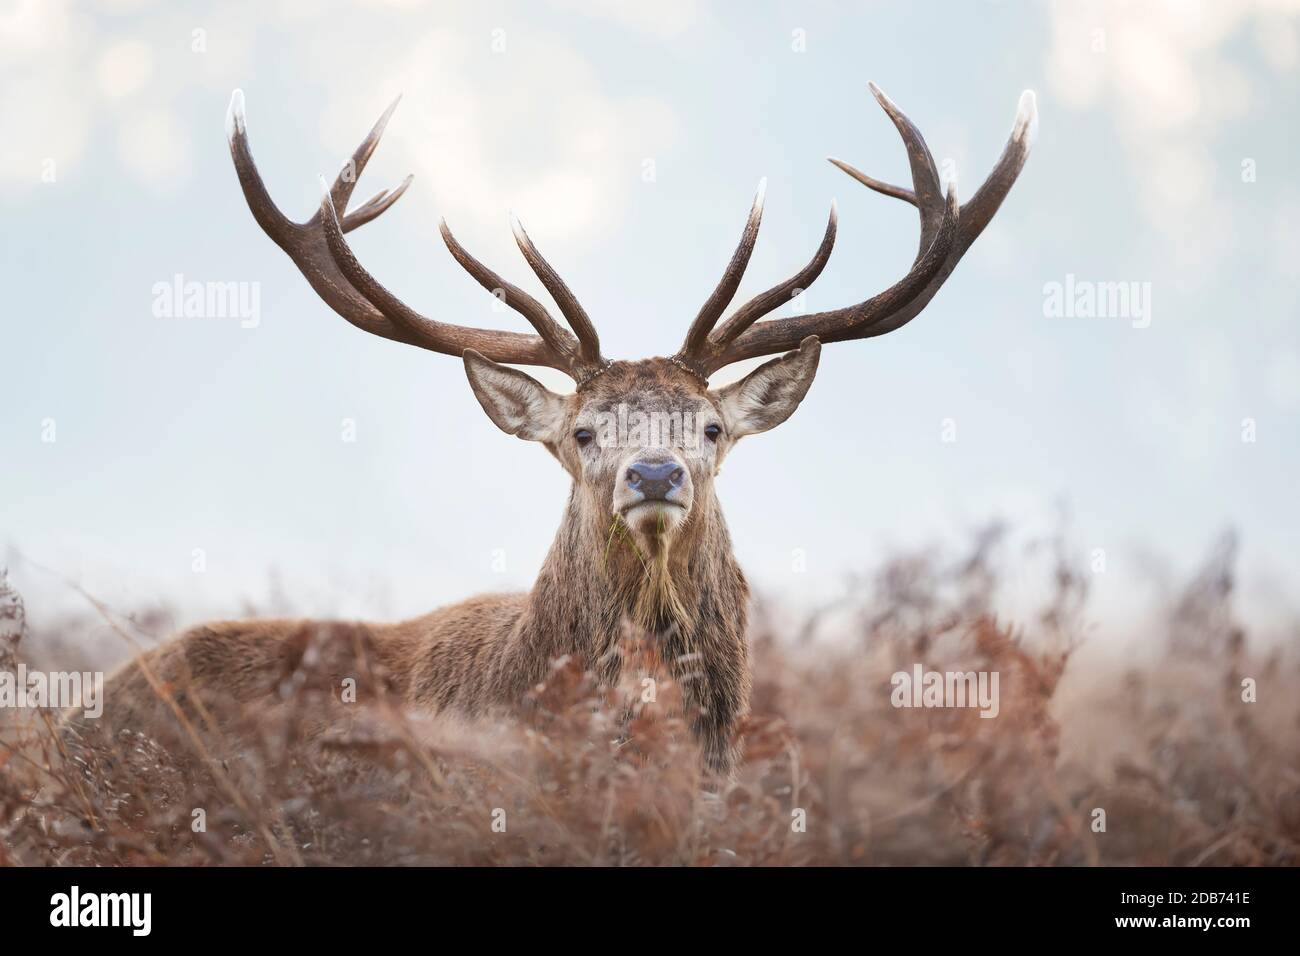 Close-up of a red deer stag standing in the field of ferns during rutting season on a misty autumn morning, UK. Stock Photo